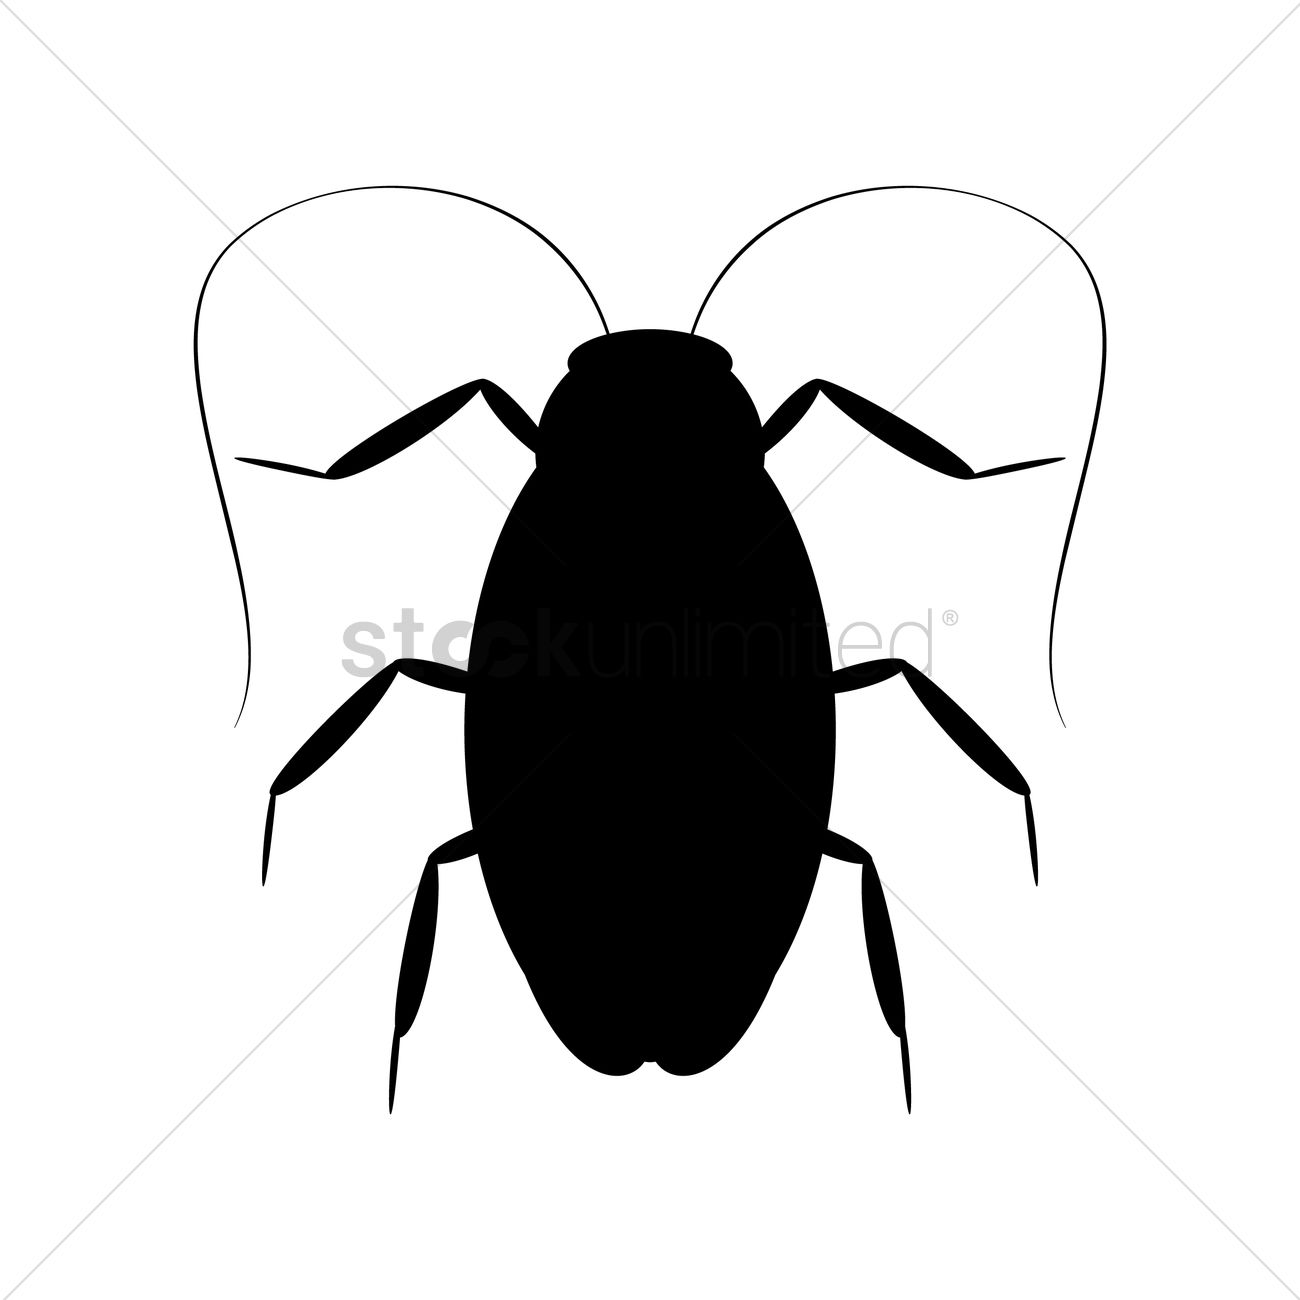 Cockroach silhouette Vector Image.